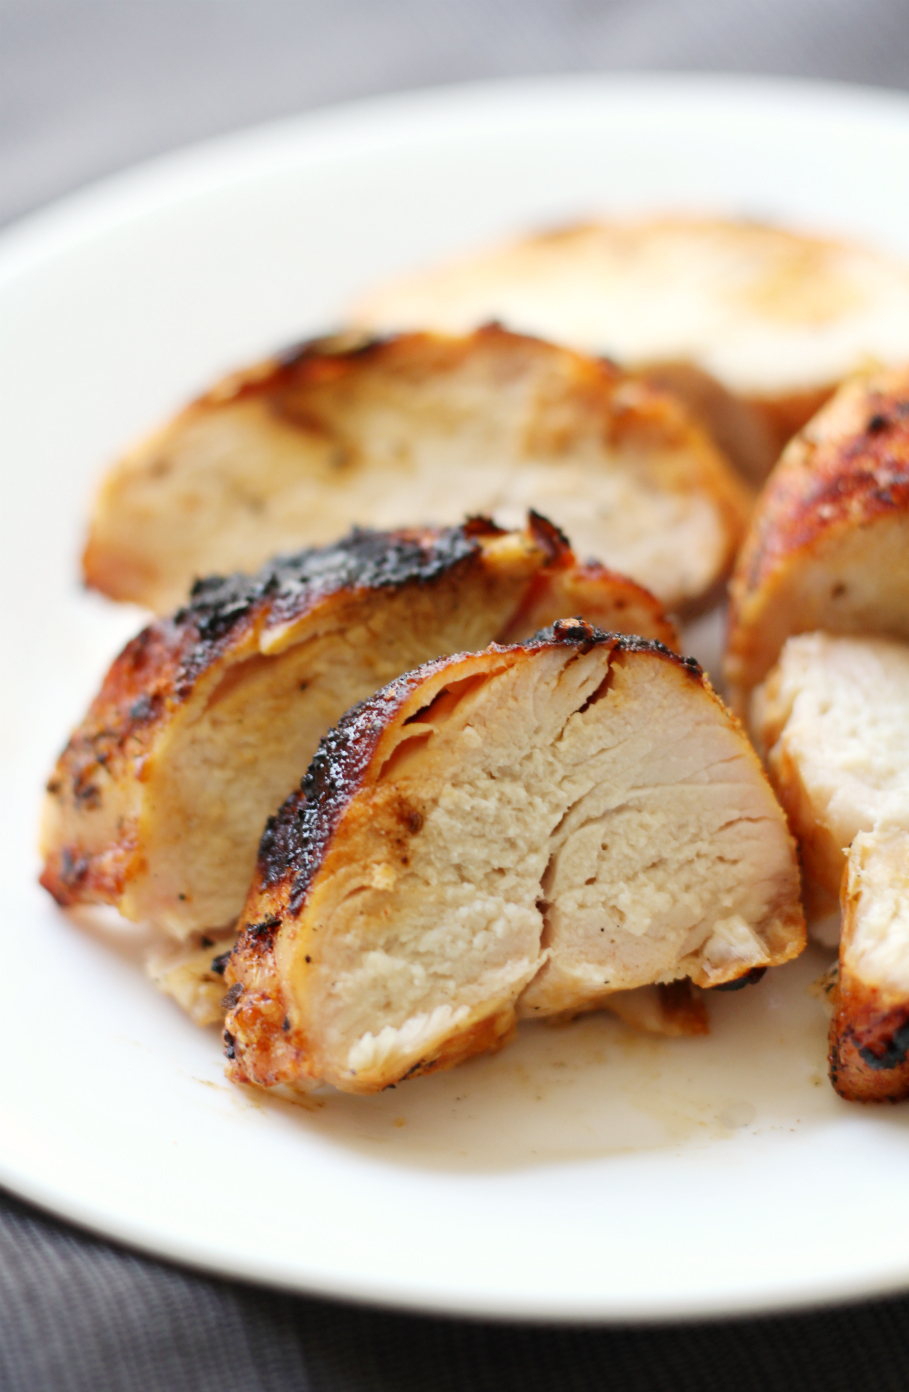 The Greatest Grilled Chicken Ever | Strength and Sunshine @RebeccaGF666 The Greatest Grilled Chicken...EVER! This no-fail recipe for the most flavorful, succulent, and tender chicken will be the only one you'll ever need! This method will produce the best poultry you've ever tasted! Gluten-free, paleo, oil-free, whole 30 approved healthy grilling dinner recipe!